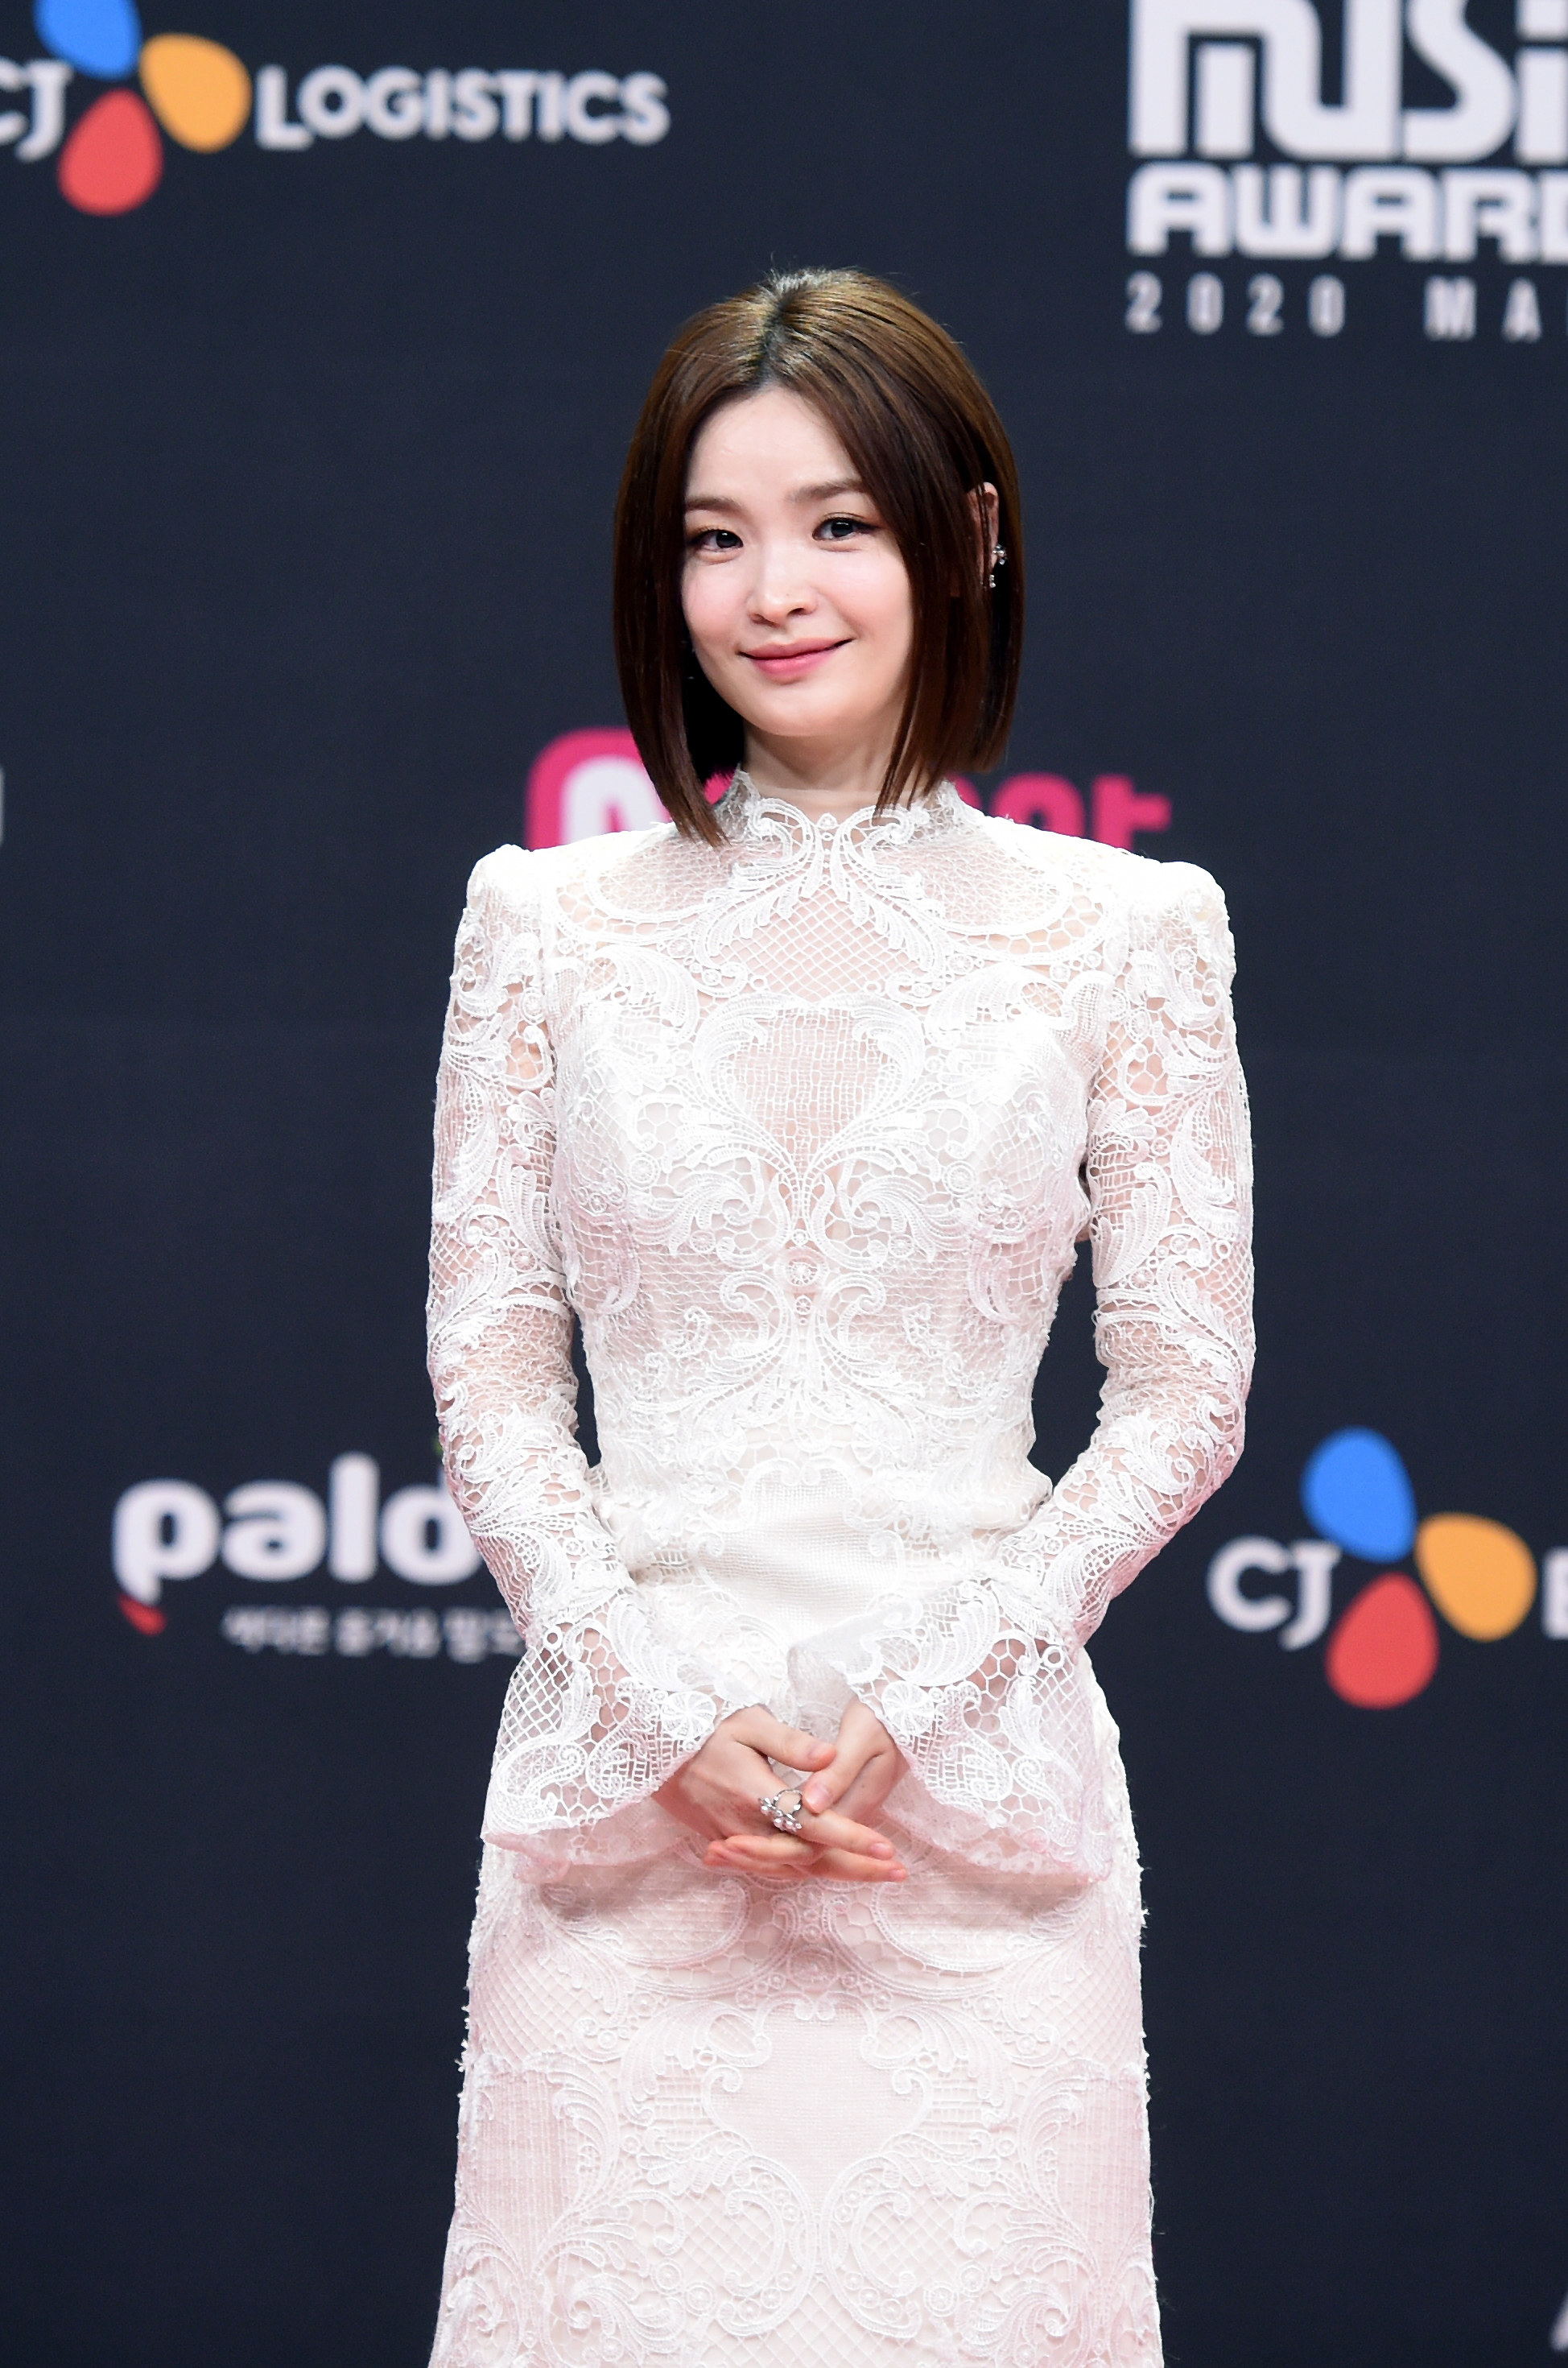 Jeon Mi Do wears a lace dress with bell sleeves at the 2020 Mnet Asian Music Awards